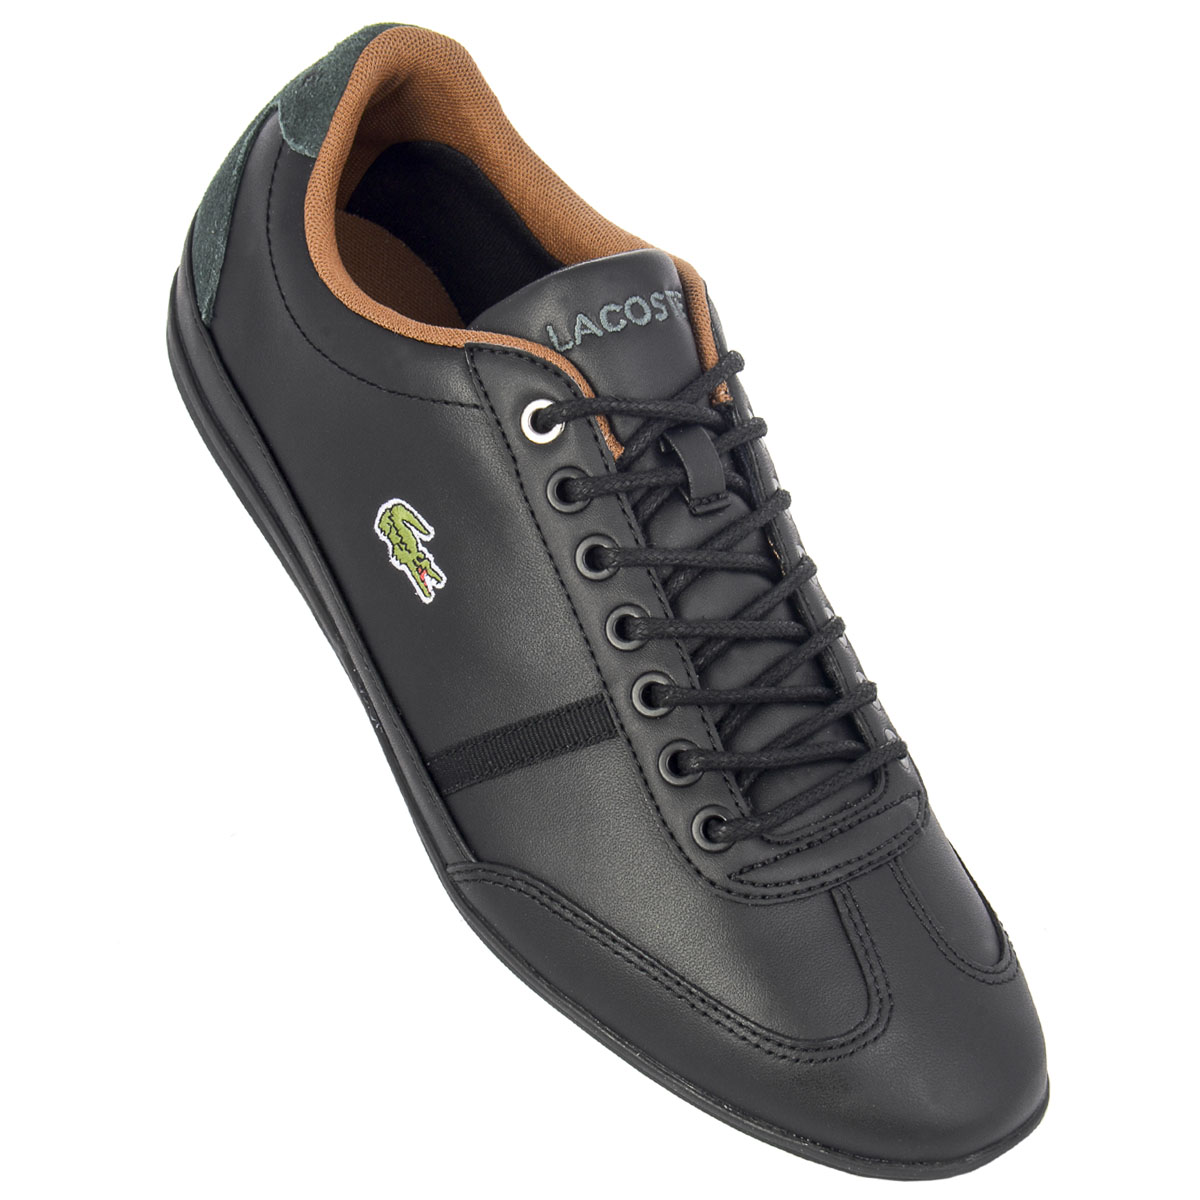 5647443bd8 NEUF Lacoste Misano Sport 7-34CAM004602H Hommes Baskets Chaussures Sneaker  SALE